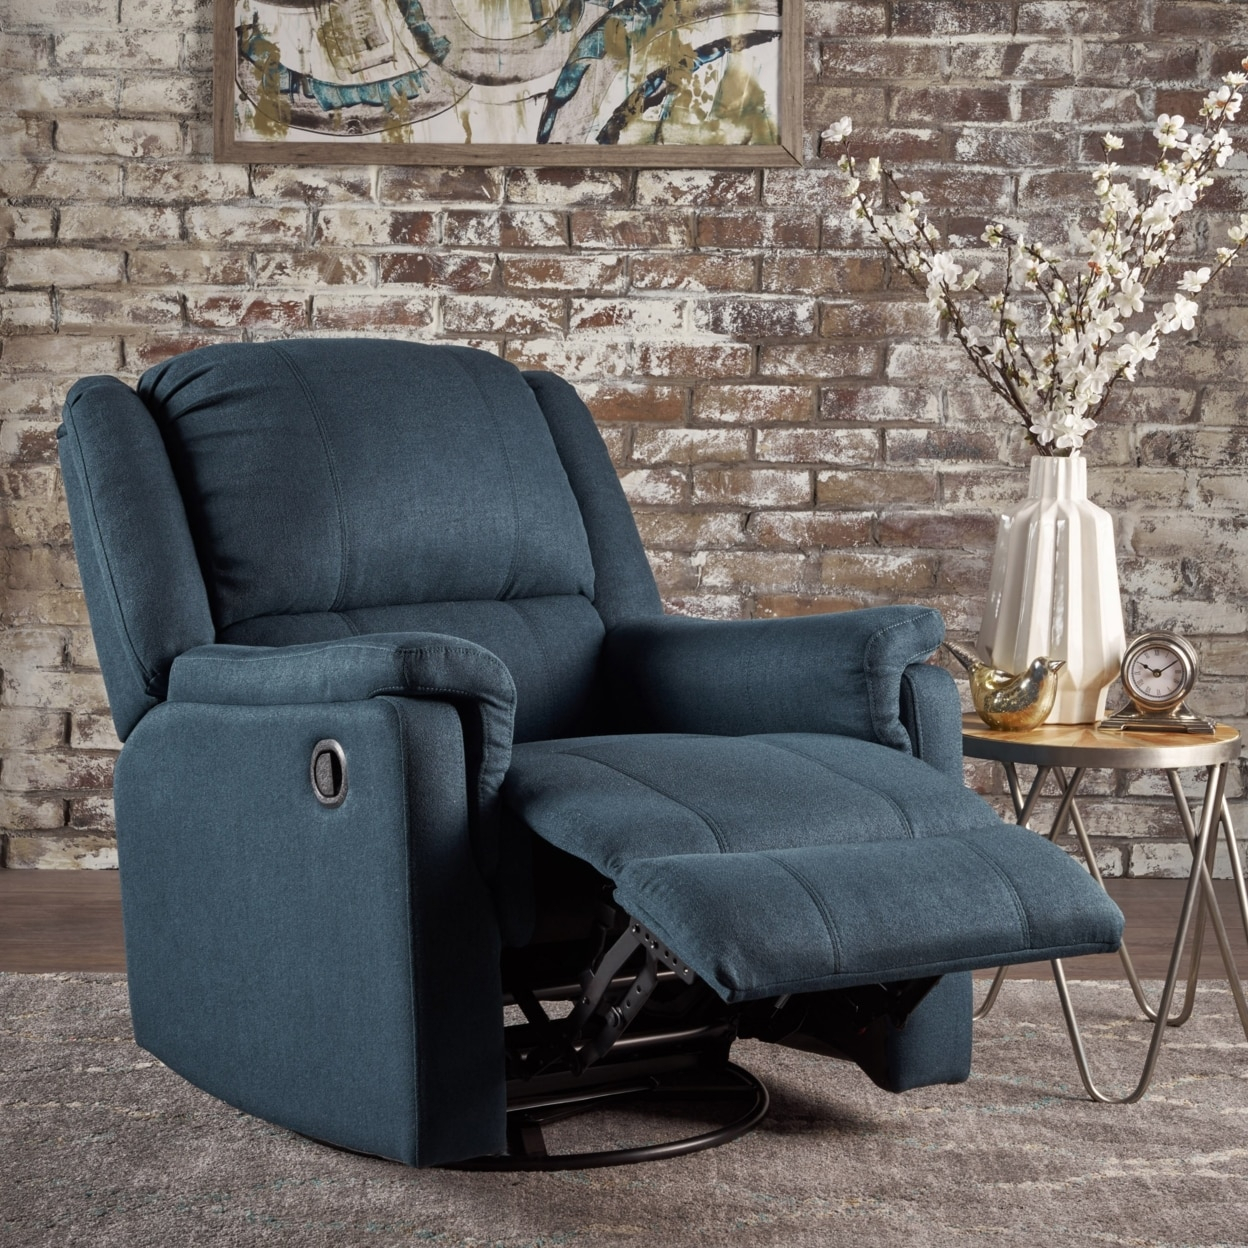 Jemma Tufted Fabric Swivel Gliding Recliner Chair In Living Room Intended For Decker Ii Fabric Swivel Glider Recliners (Photo 5 of 25)